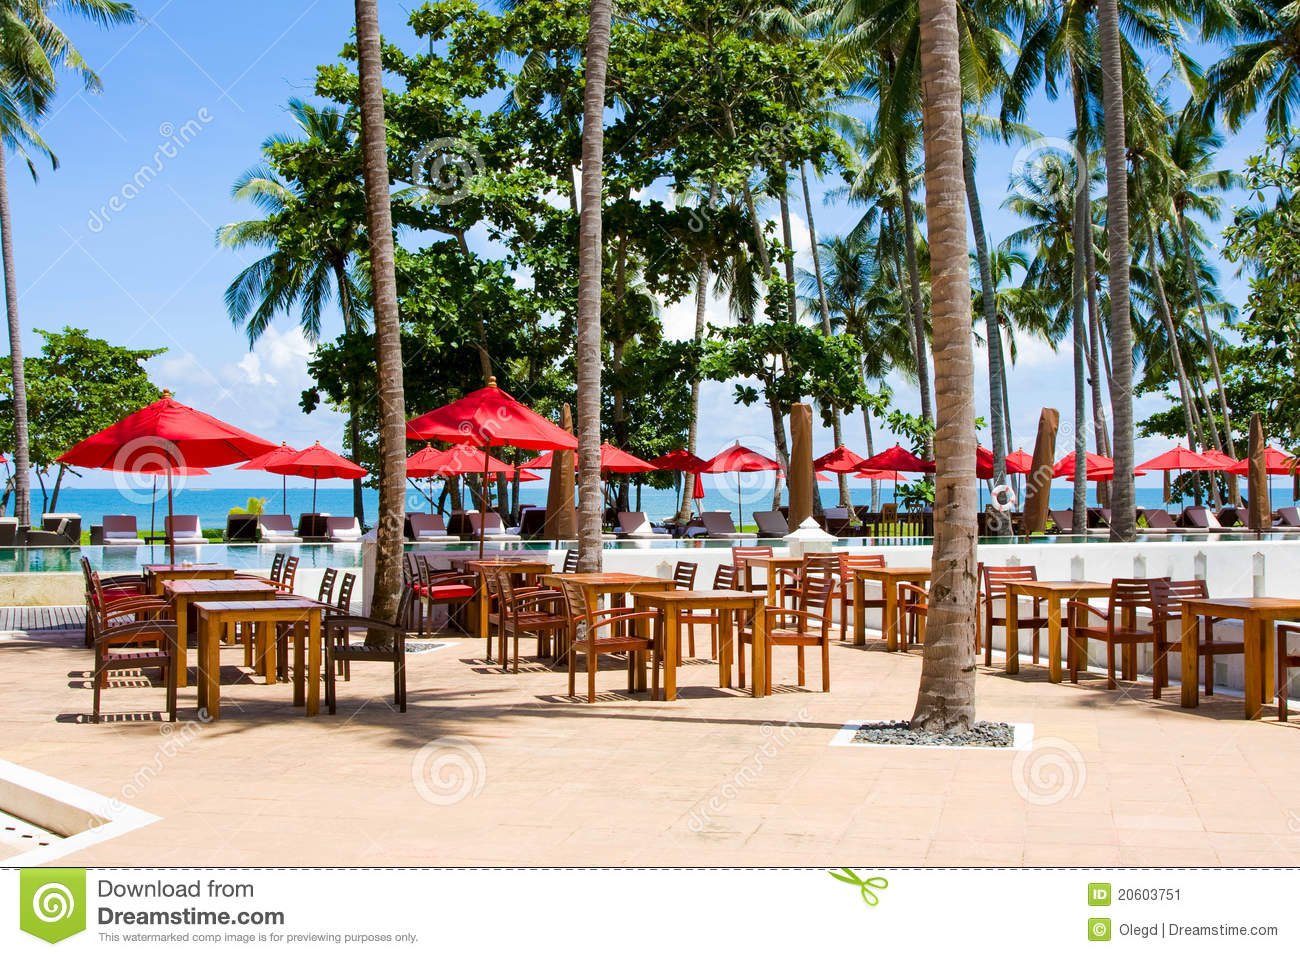 Terrace of a restaurant with red sun shades stock image for Restaurant with terrace